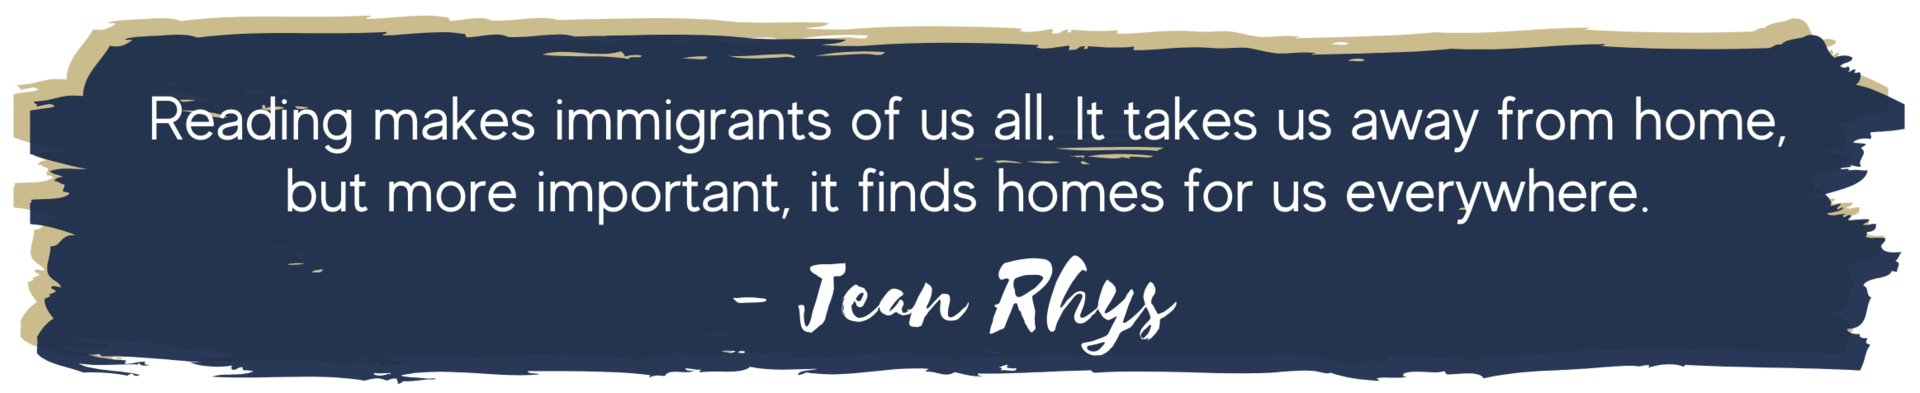 Reading makes immigrants of us all. It takes us away from home, but more important, it finds homes for us everywhere. Jean Rhys